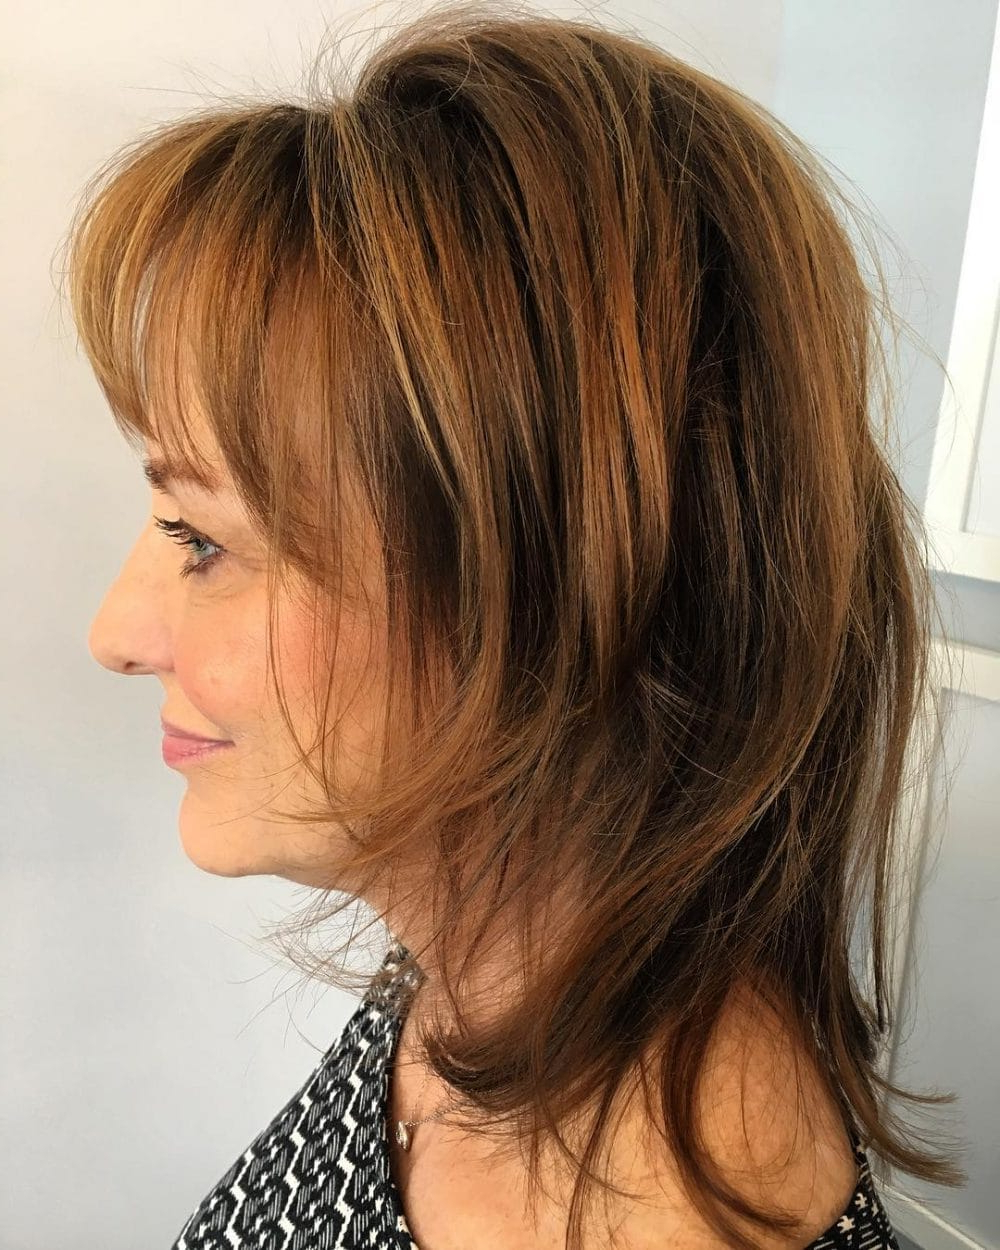 26 Modern Shag Haircuts To Try In 2019 Regarding Popular Mid Length Feathered Shag Haircuts For Thick Hair (View 4 of 20)